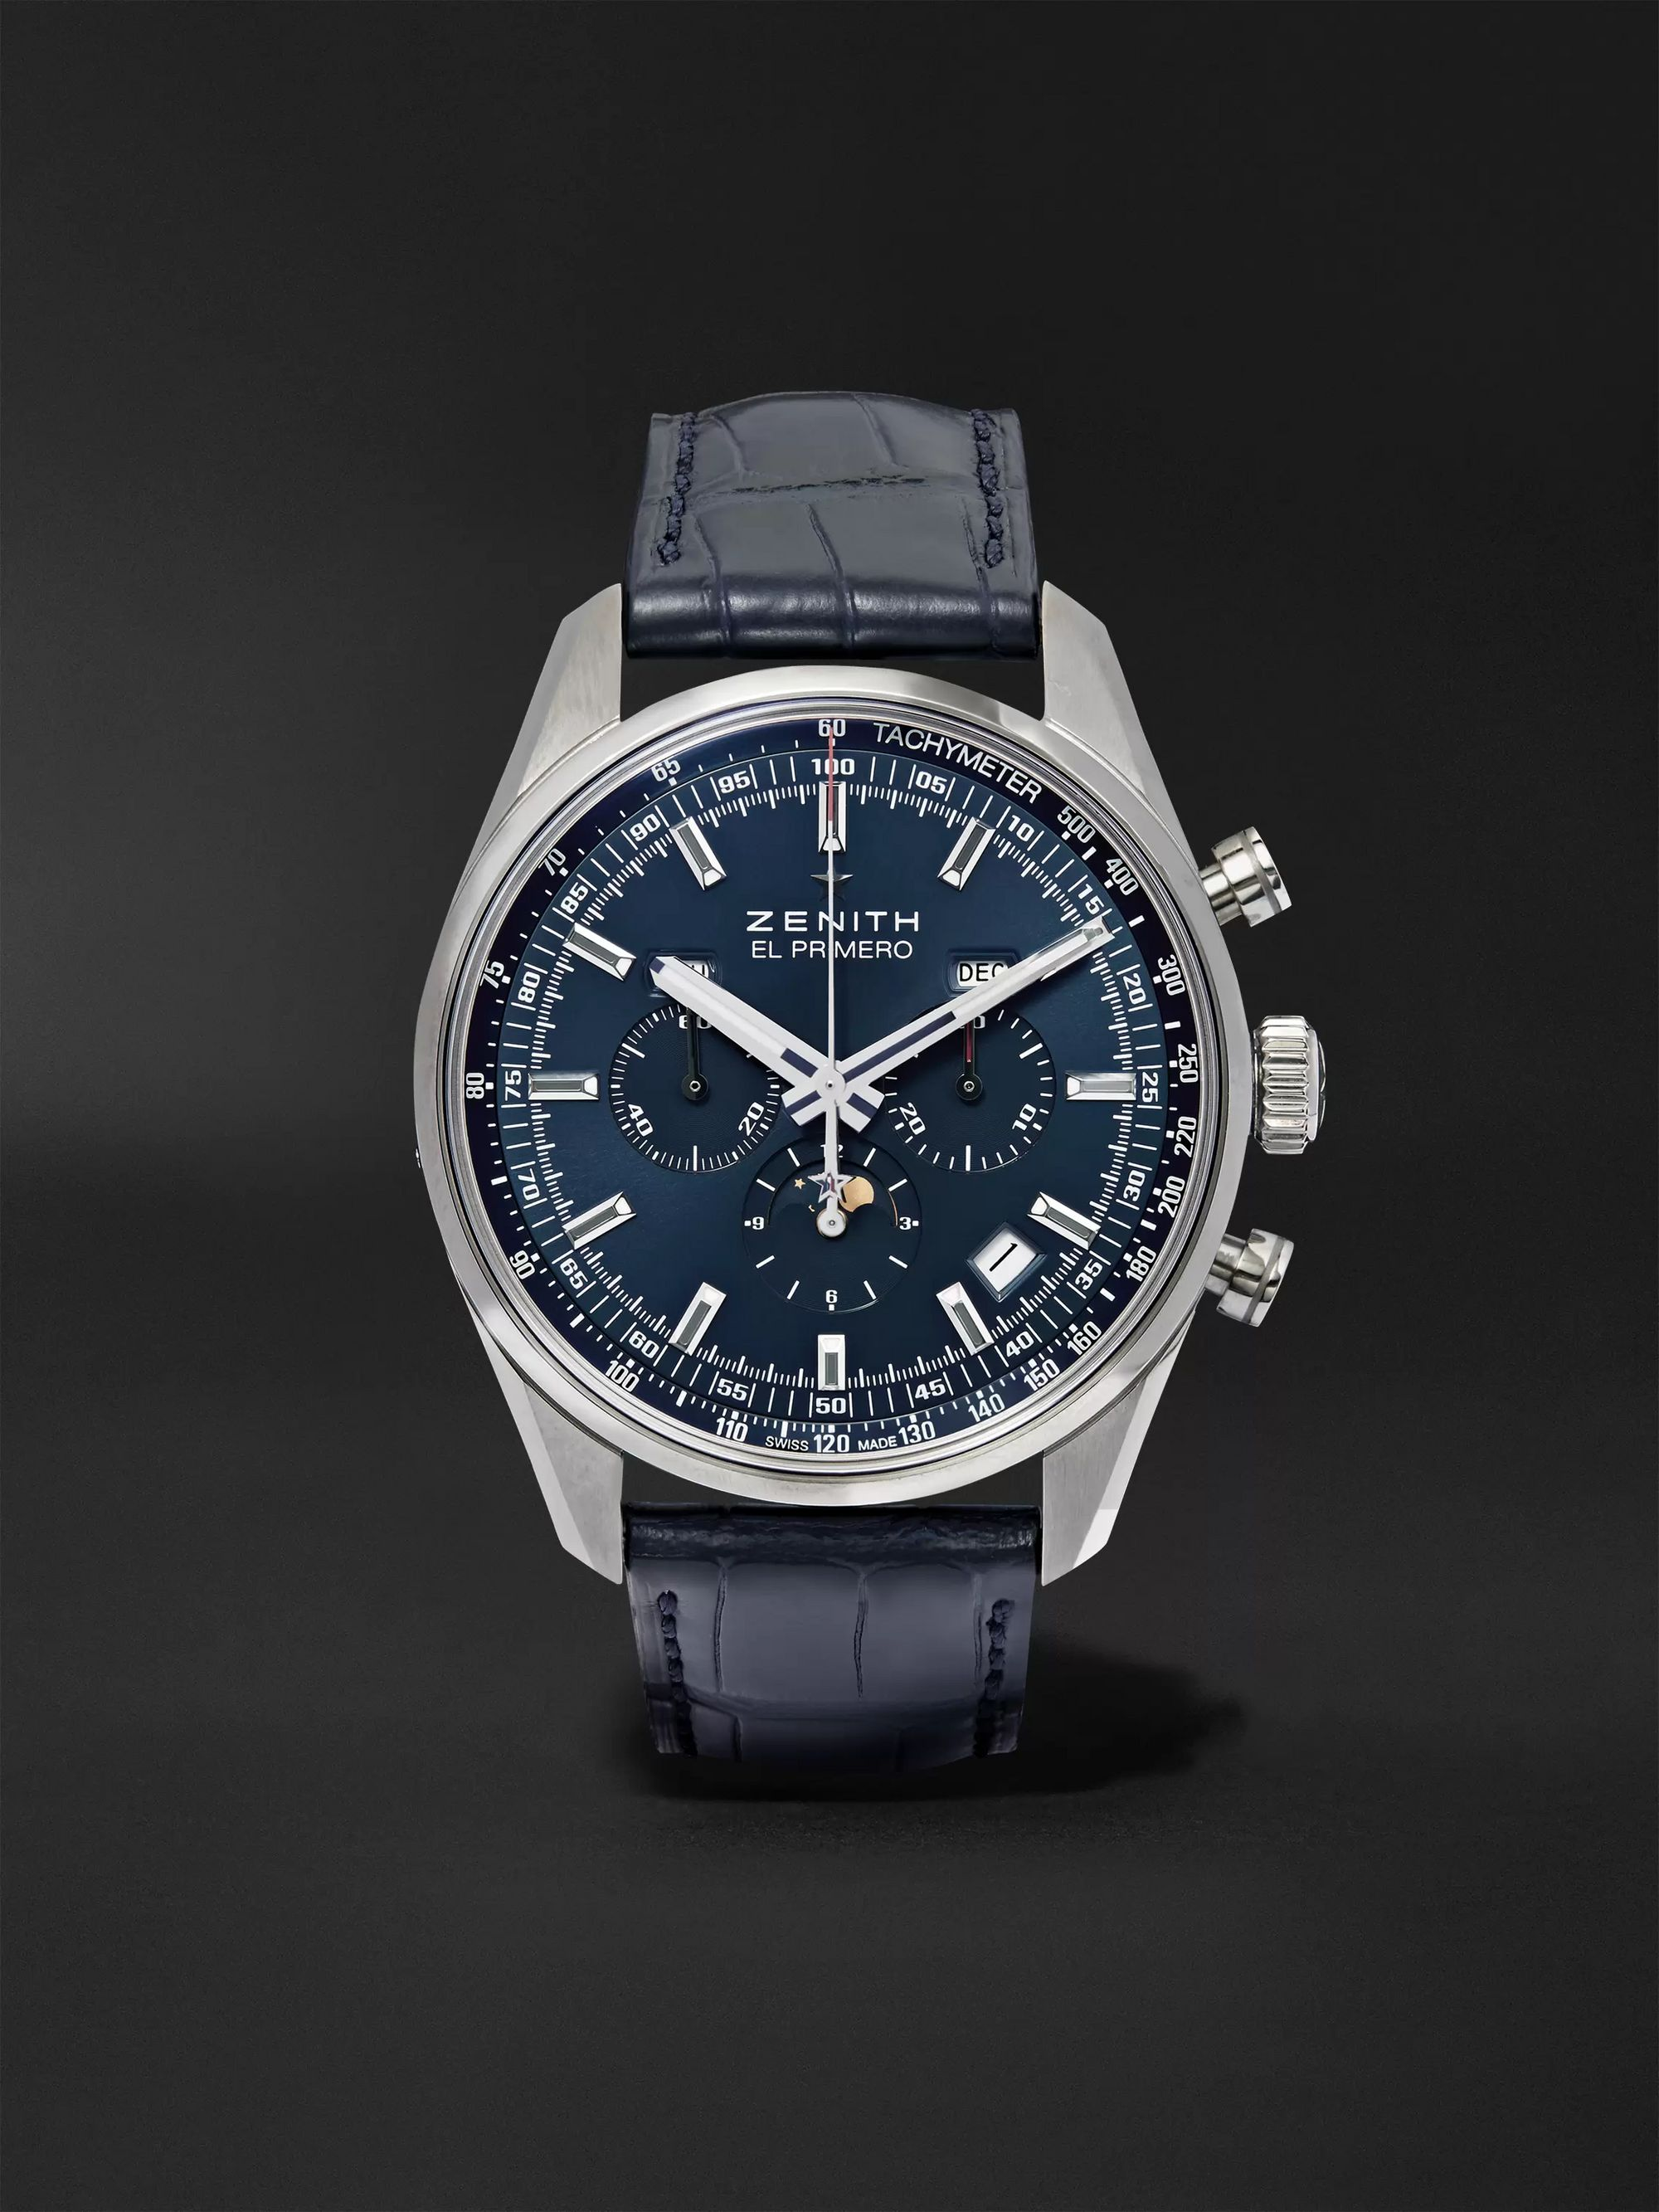 Zenith El Primero 410 42mm Stainless Steel and Alligator Watch, Ref. No. 03.2097.410/51.C700